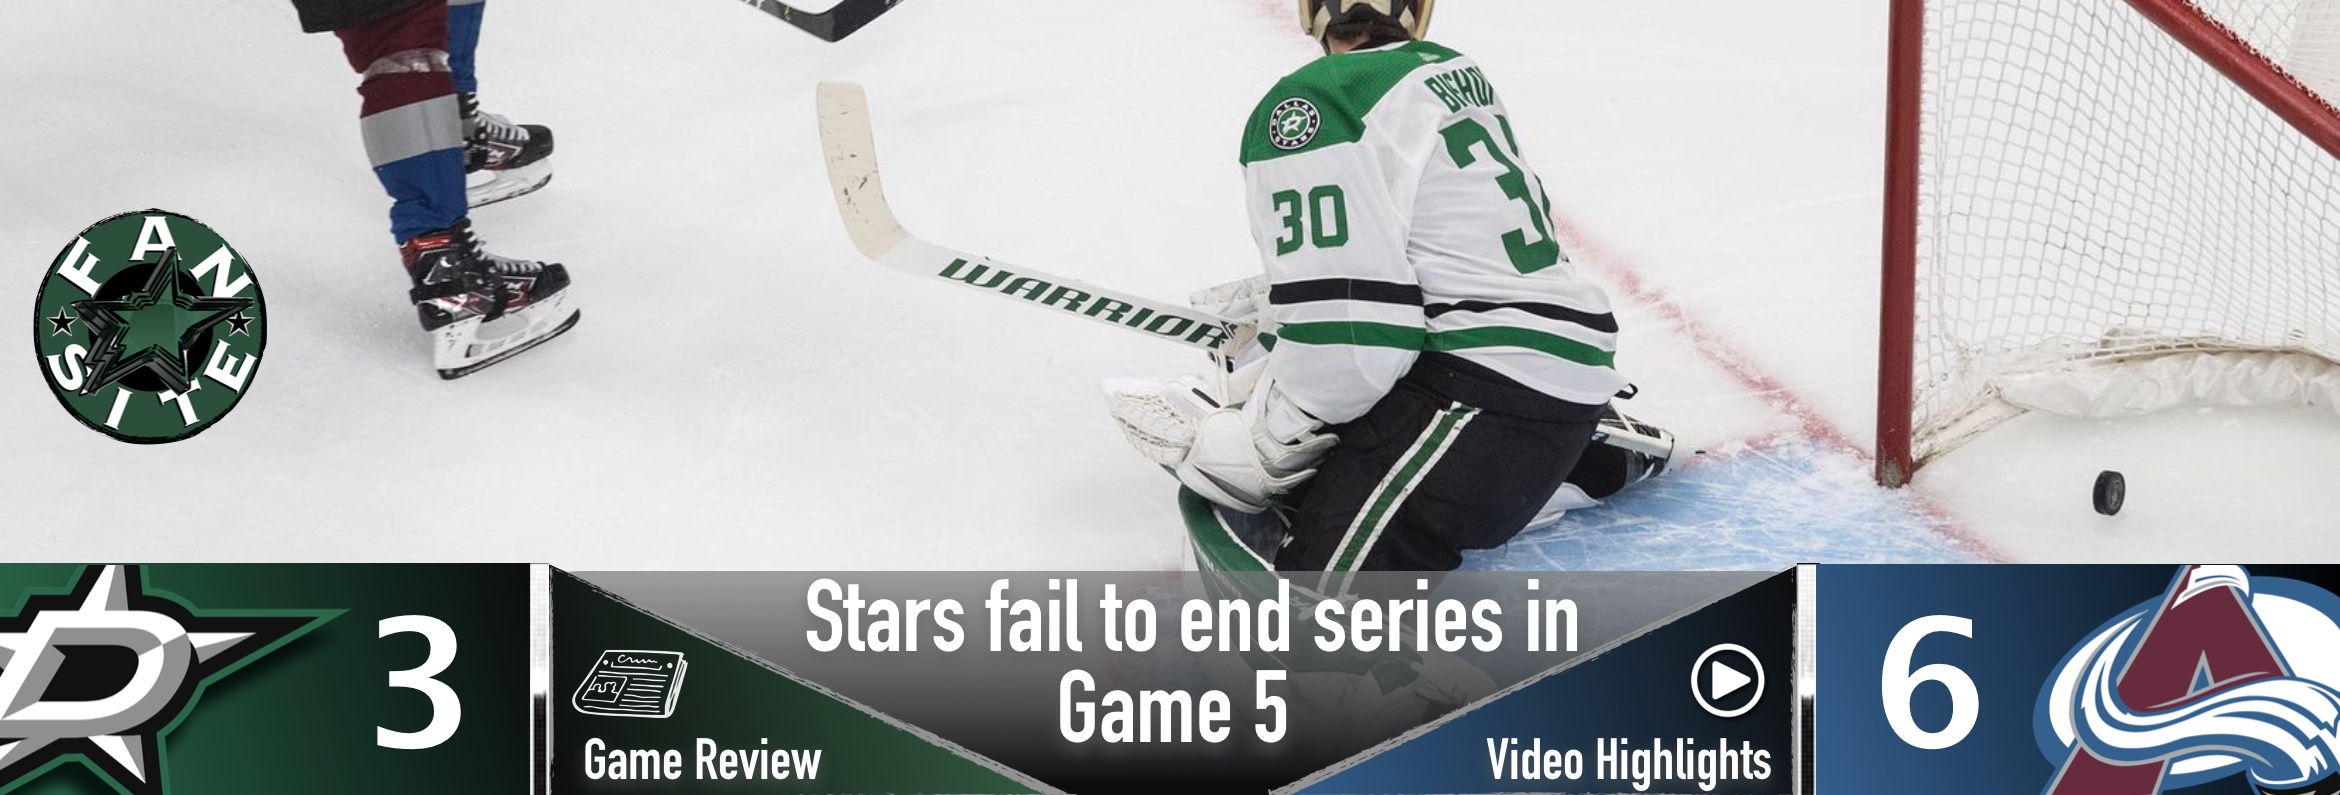 Stars fail to end series in game 5